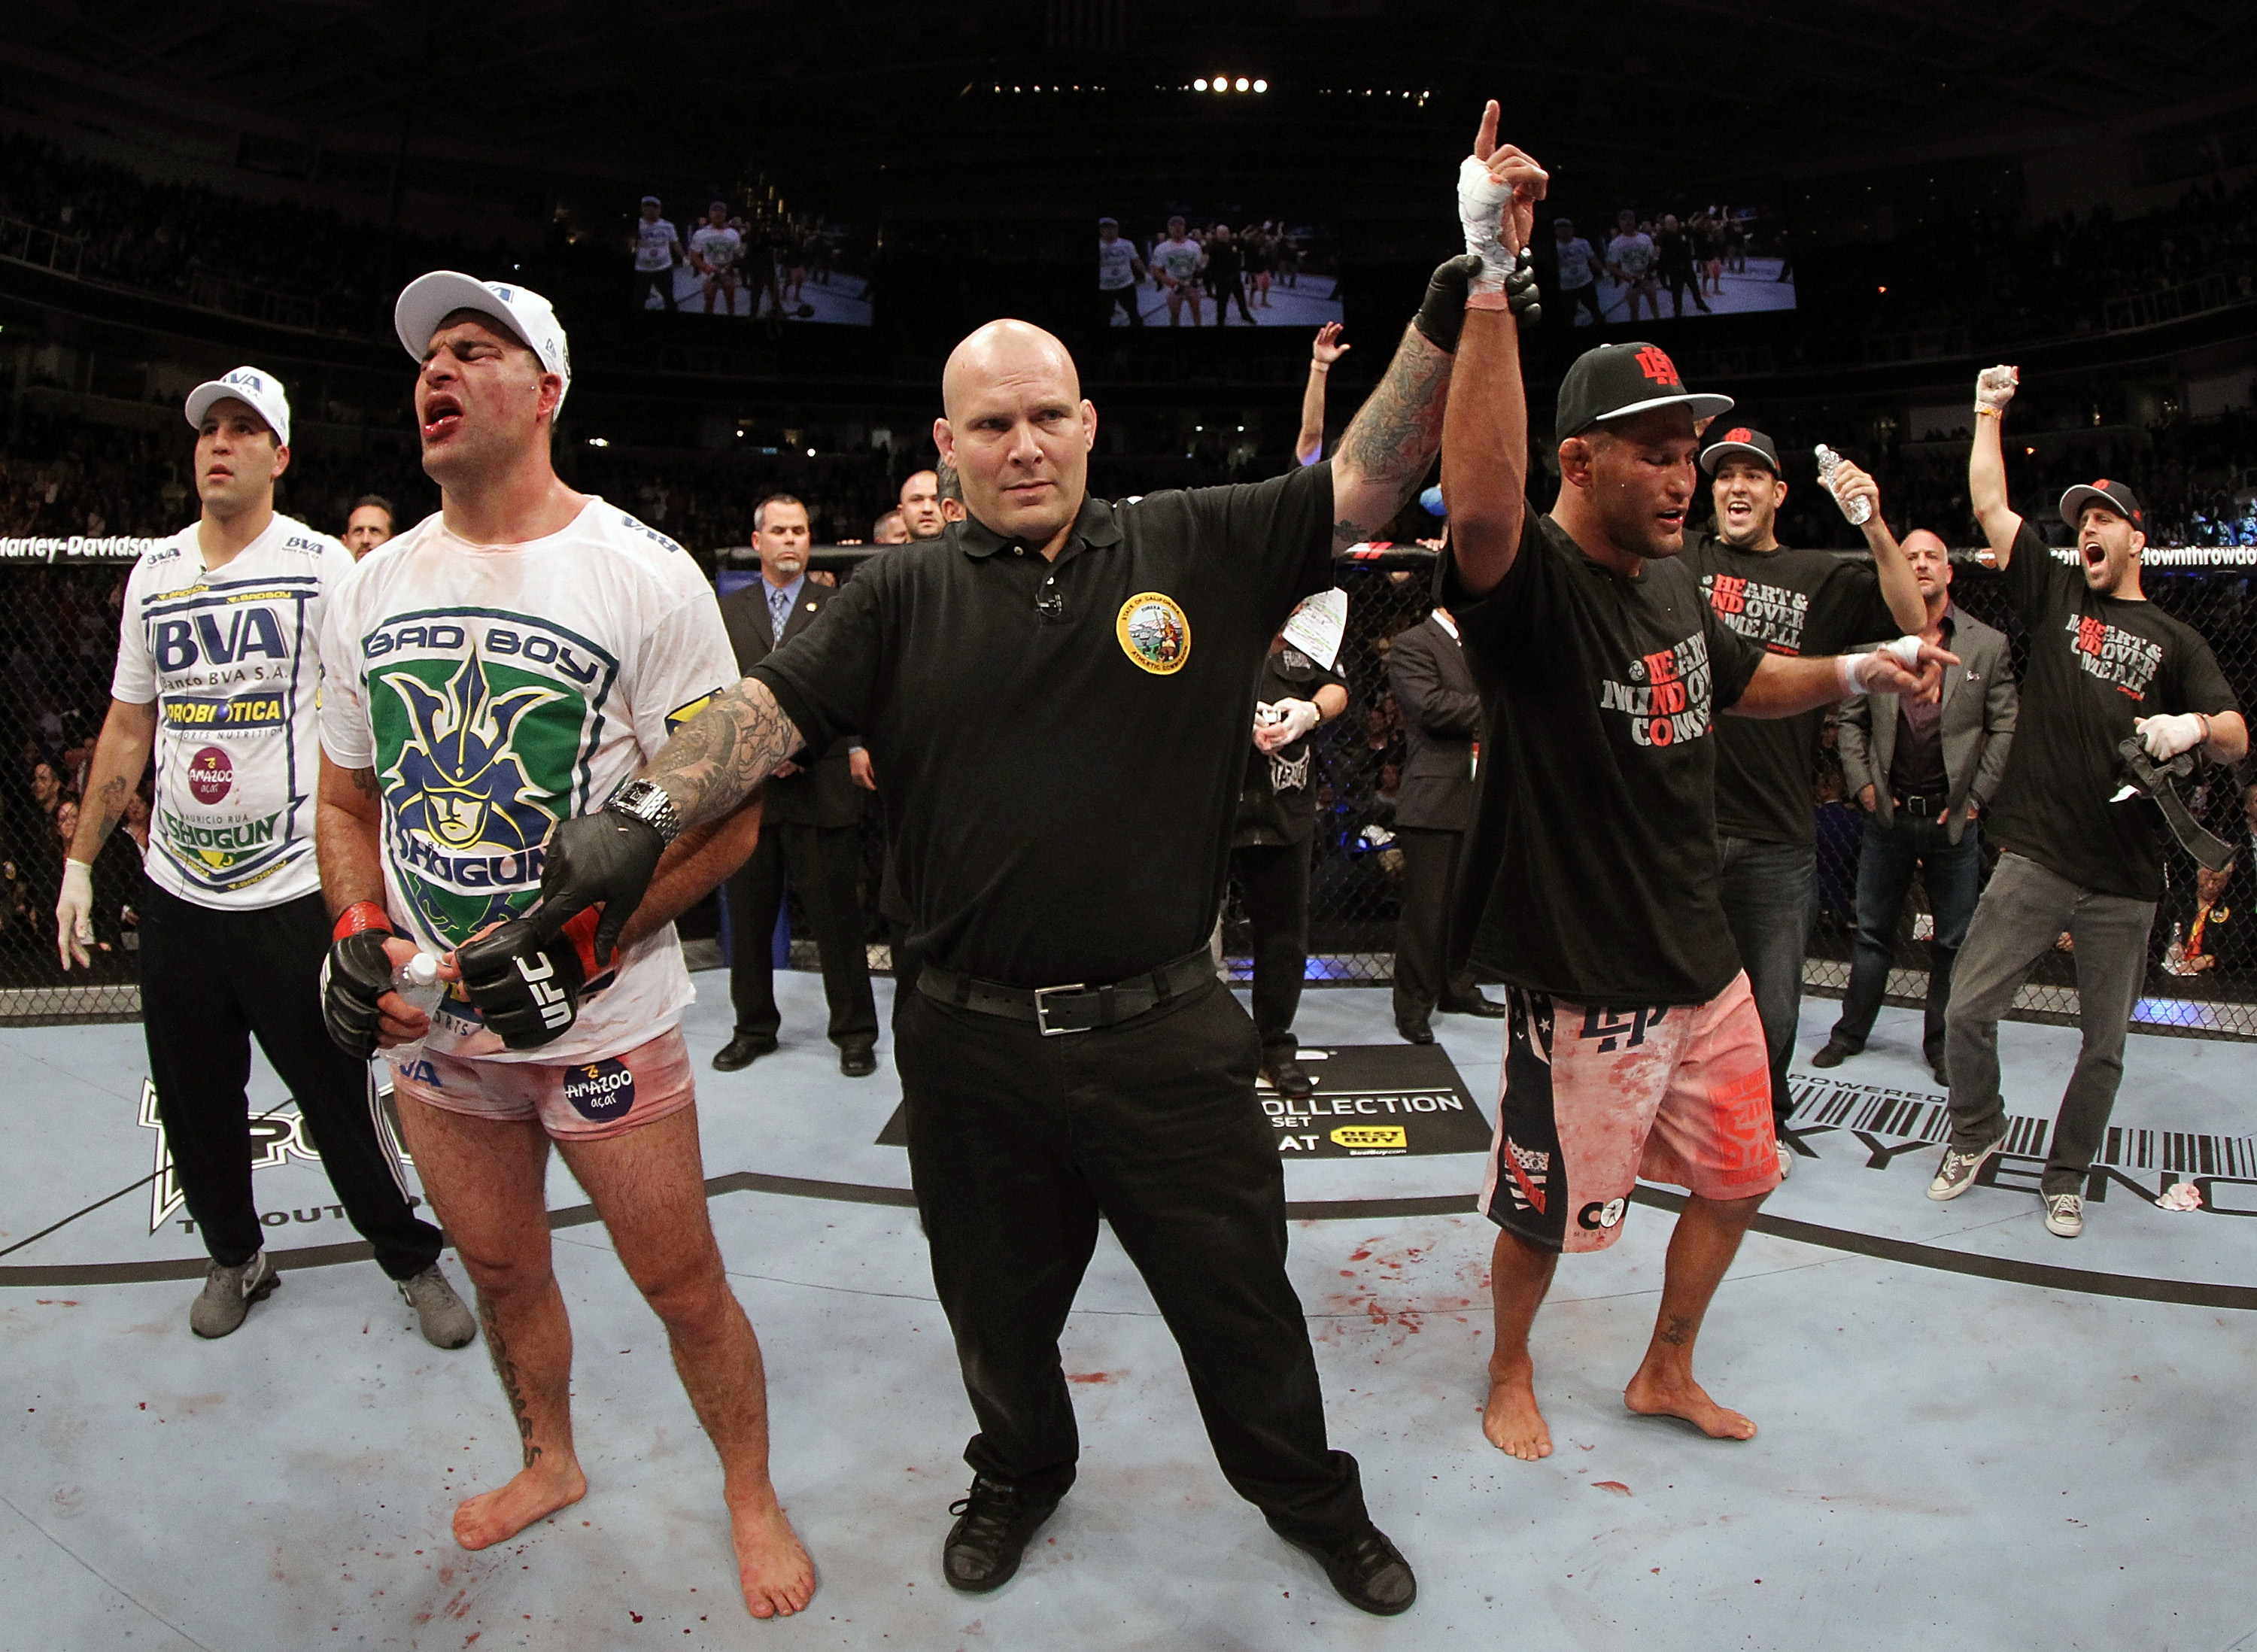 SAN JOSE, CA - NOVEMBER 19: (R-L) Dan Henderson celebrates defeating Mauricio Rua during a UFC Light Heavyweight bout at the HP Pavilion on November 19, 2011 in San Jose, California. (Photo by Josh Hedges/Zuffa LLC/Zuffa LLC via Getty Images)